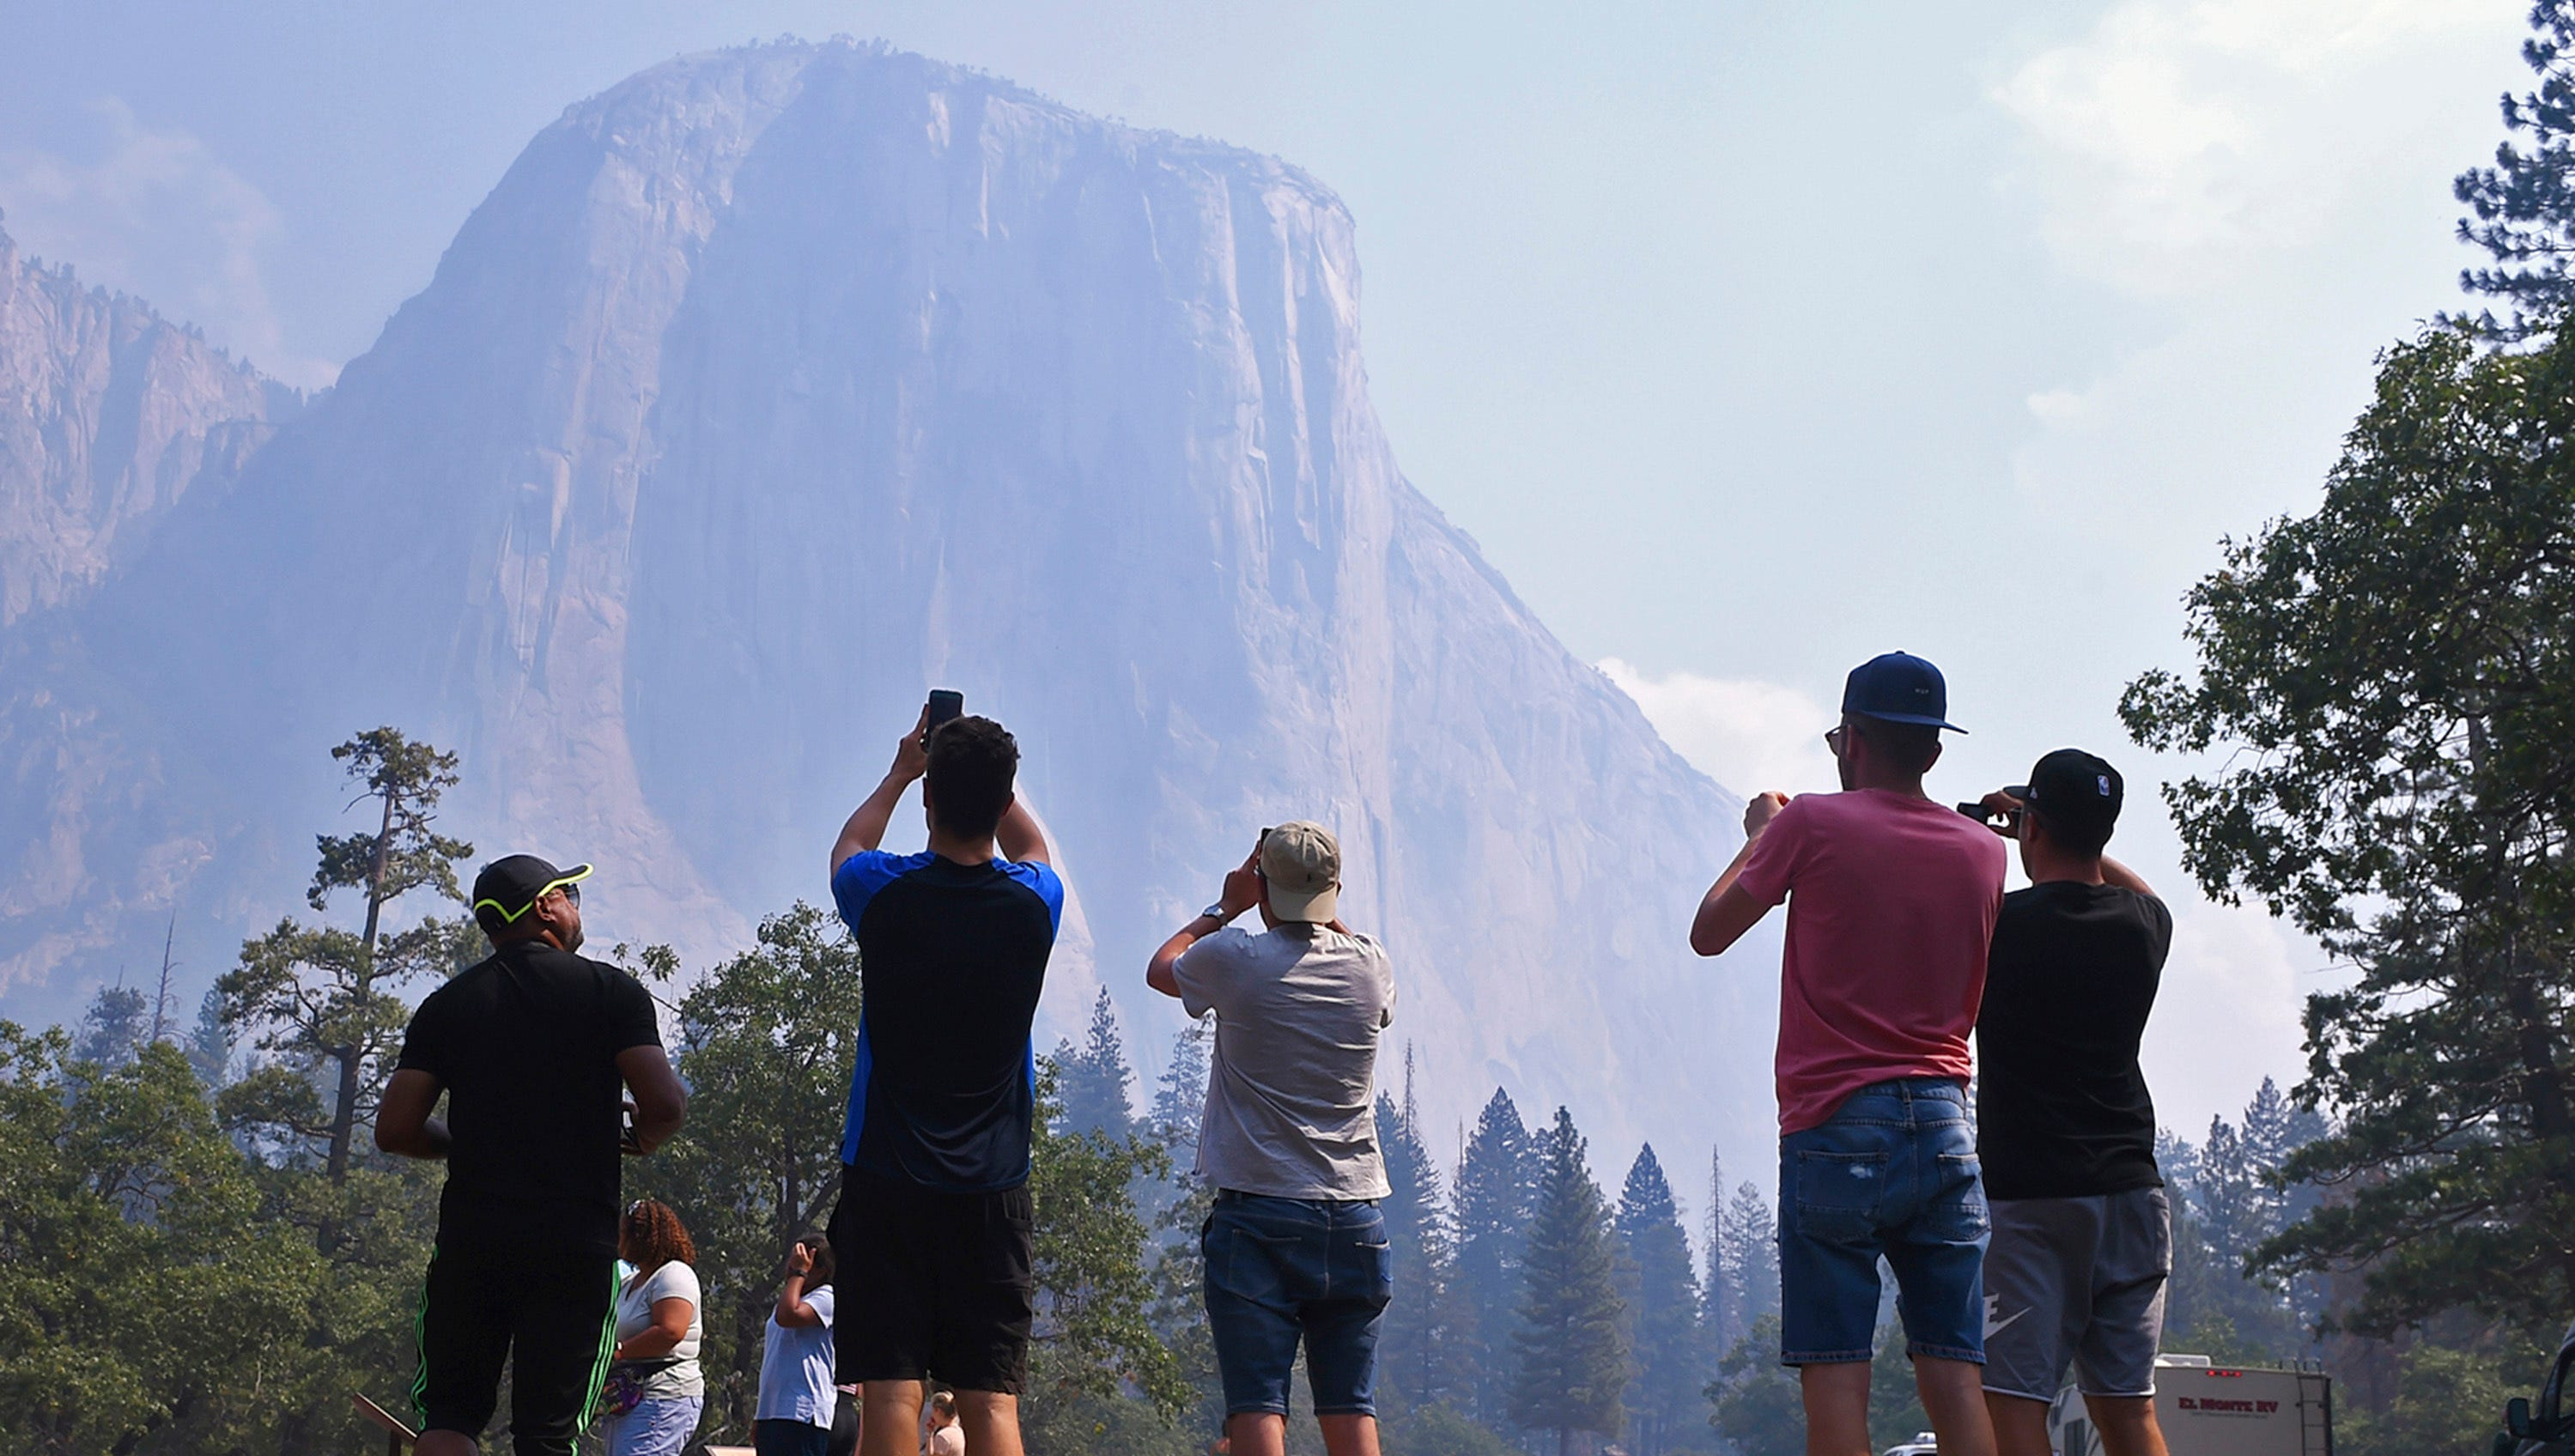 Yosemite Valley's open for business, but will the tourists flock back?